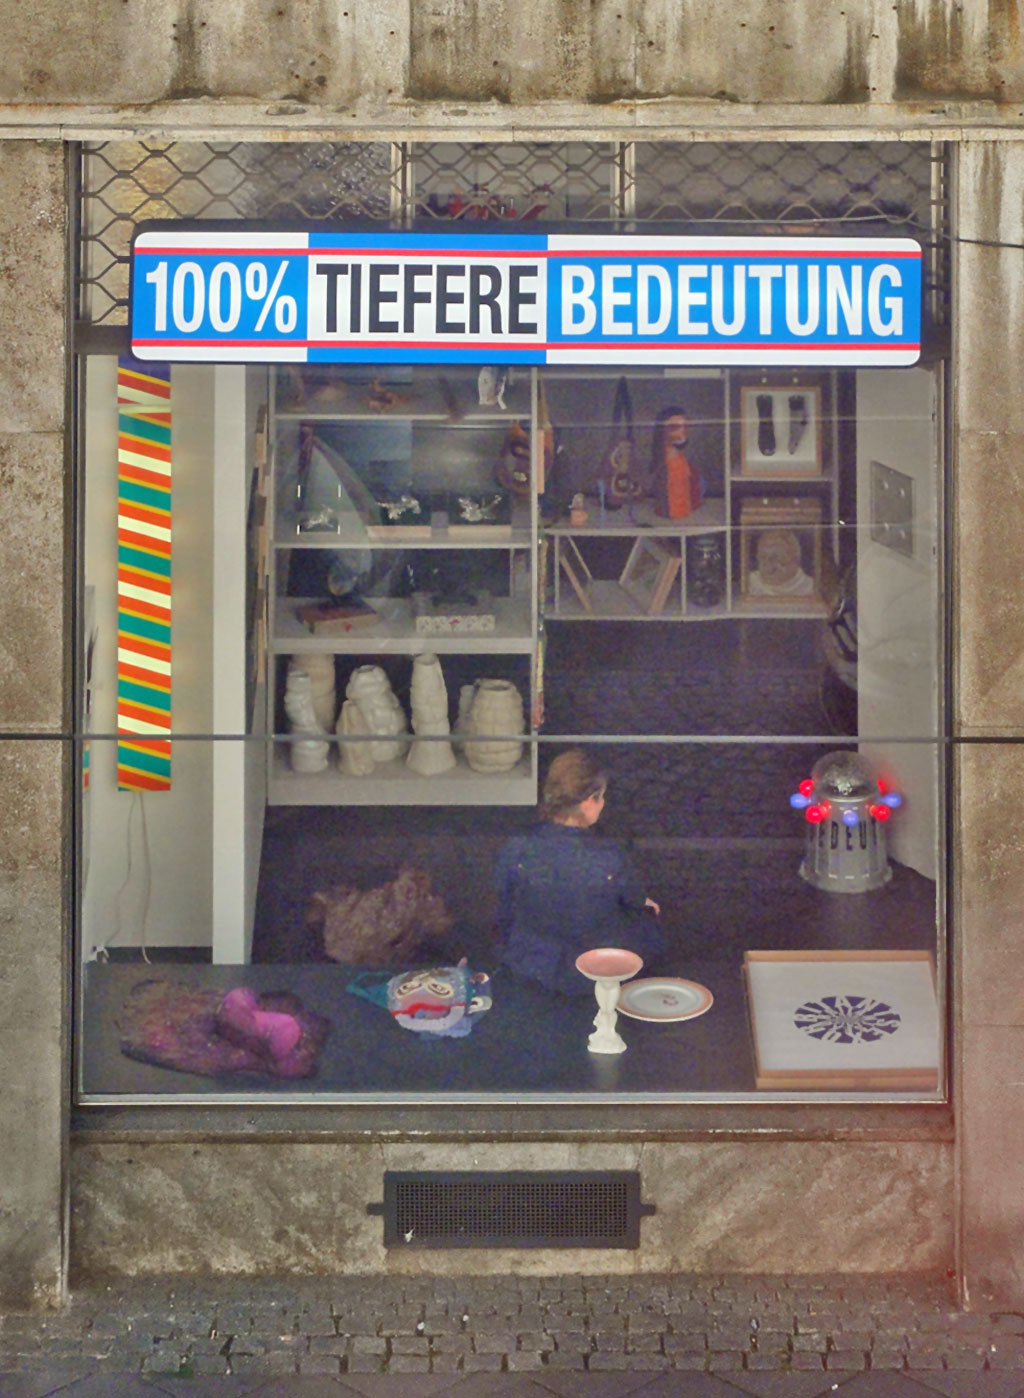 100% Tiefere Bedeutung